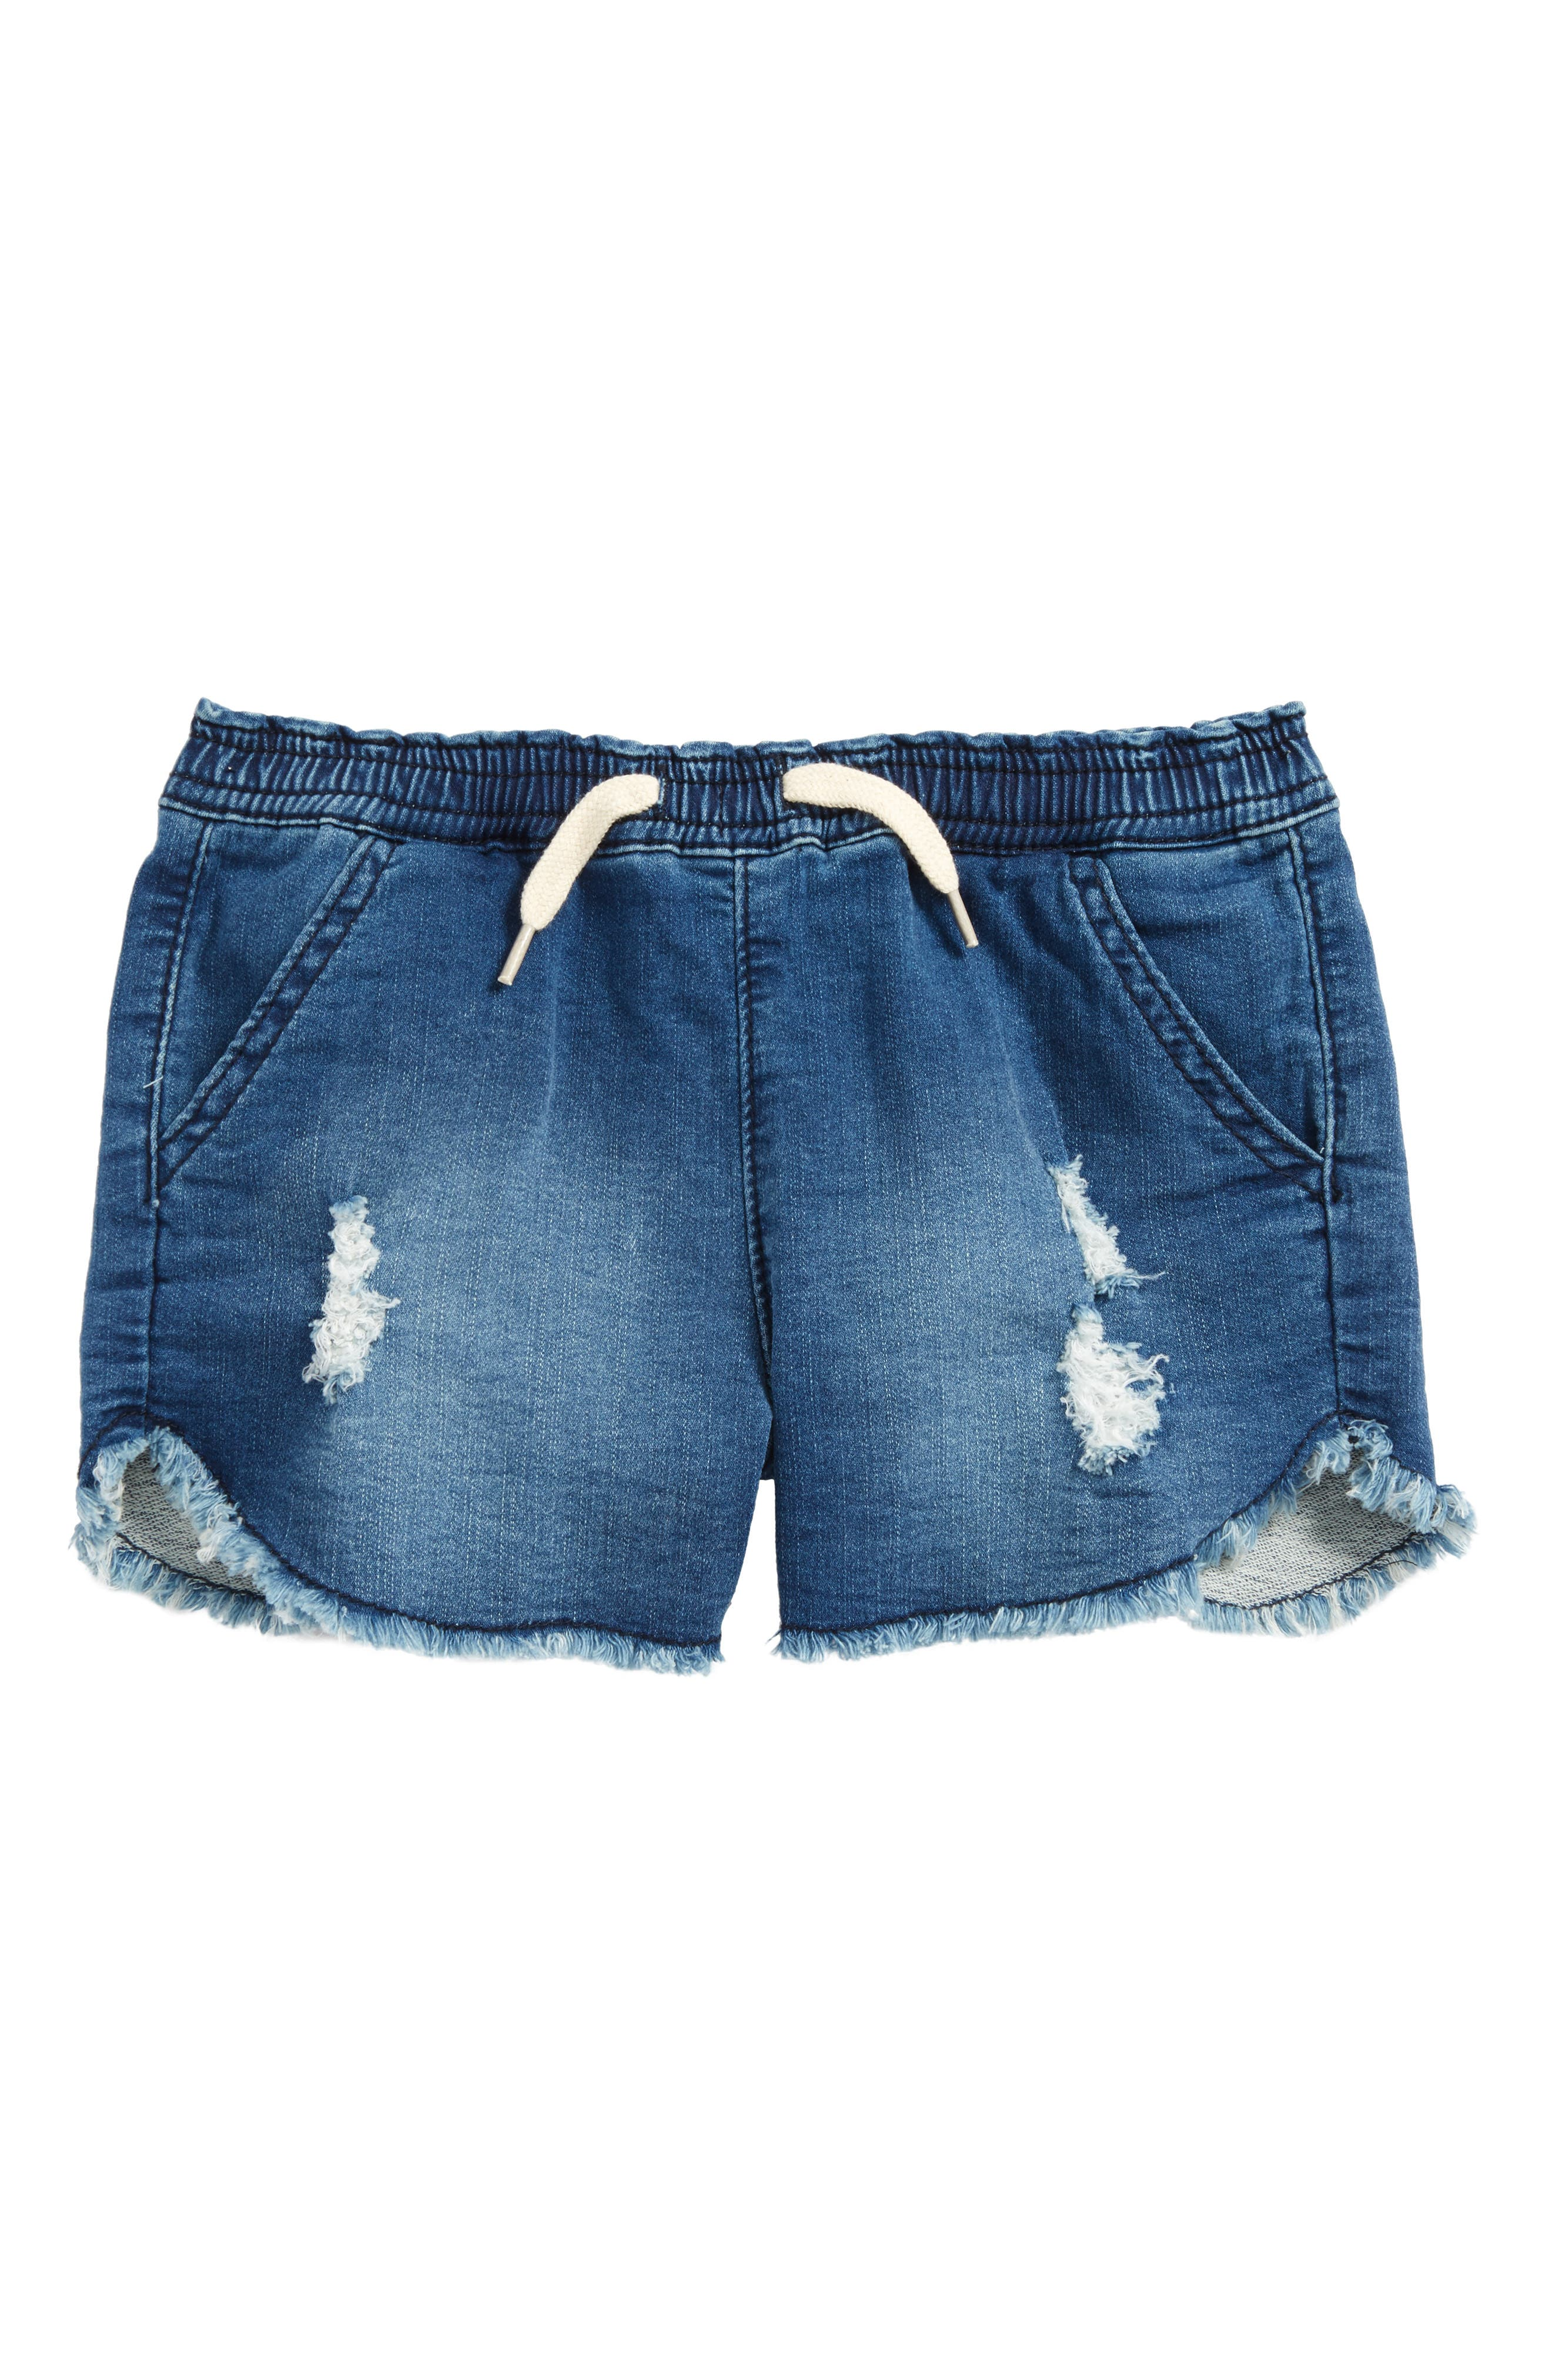 Hudson Kids Katie French Terry Shorts (Toddler Girls & Little Girls)